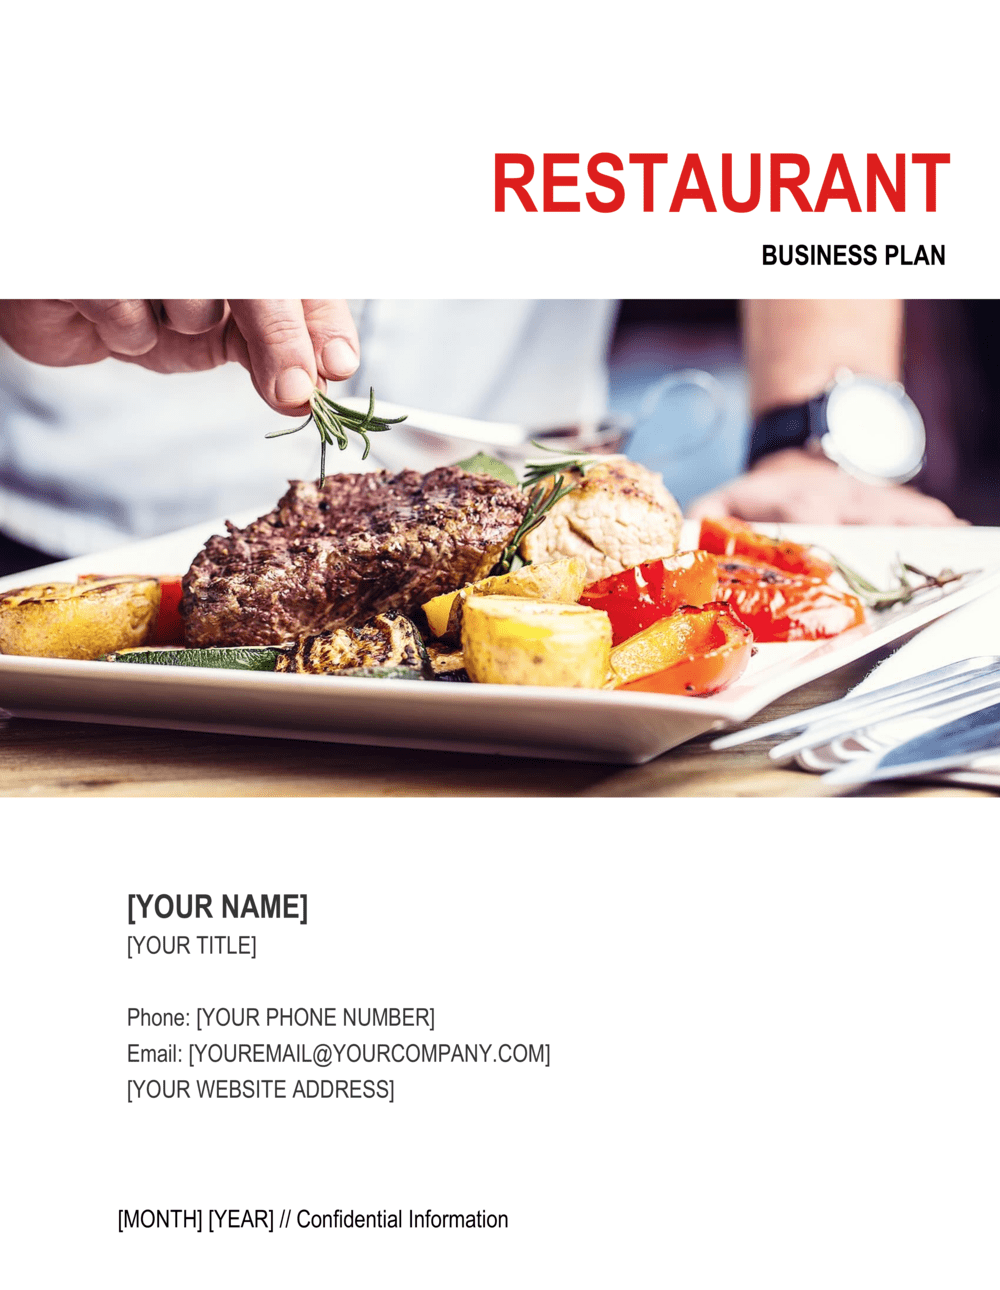 Business-in-a-Box's Restaurant Business Plan 6 Template